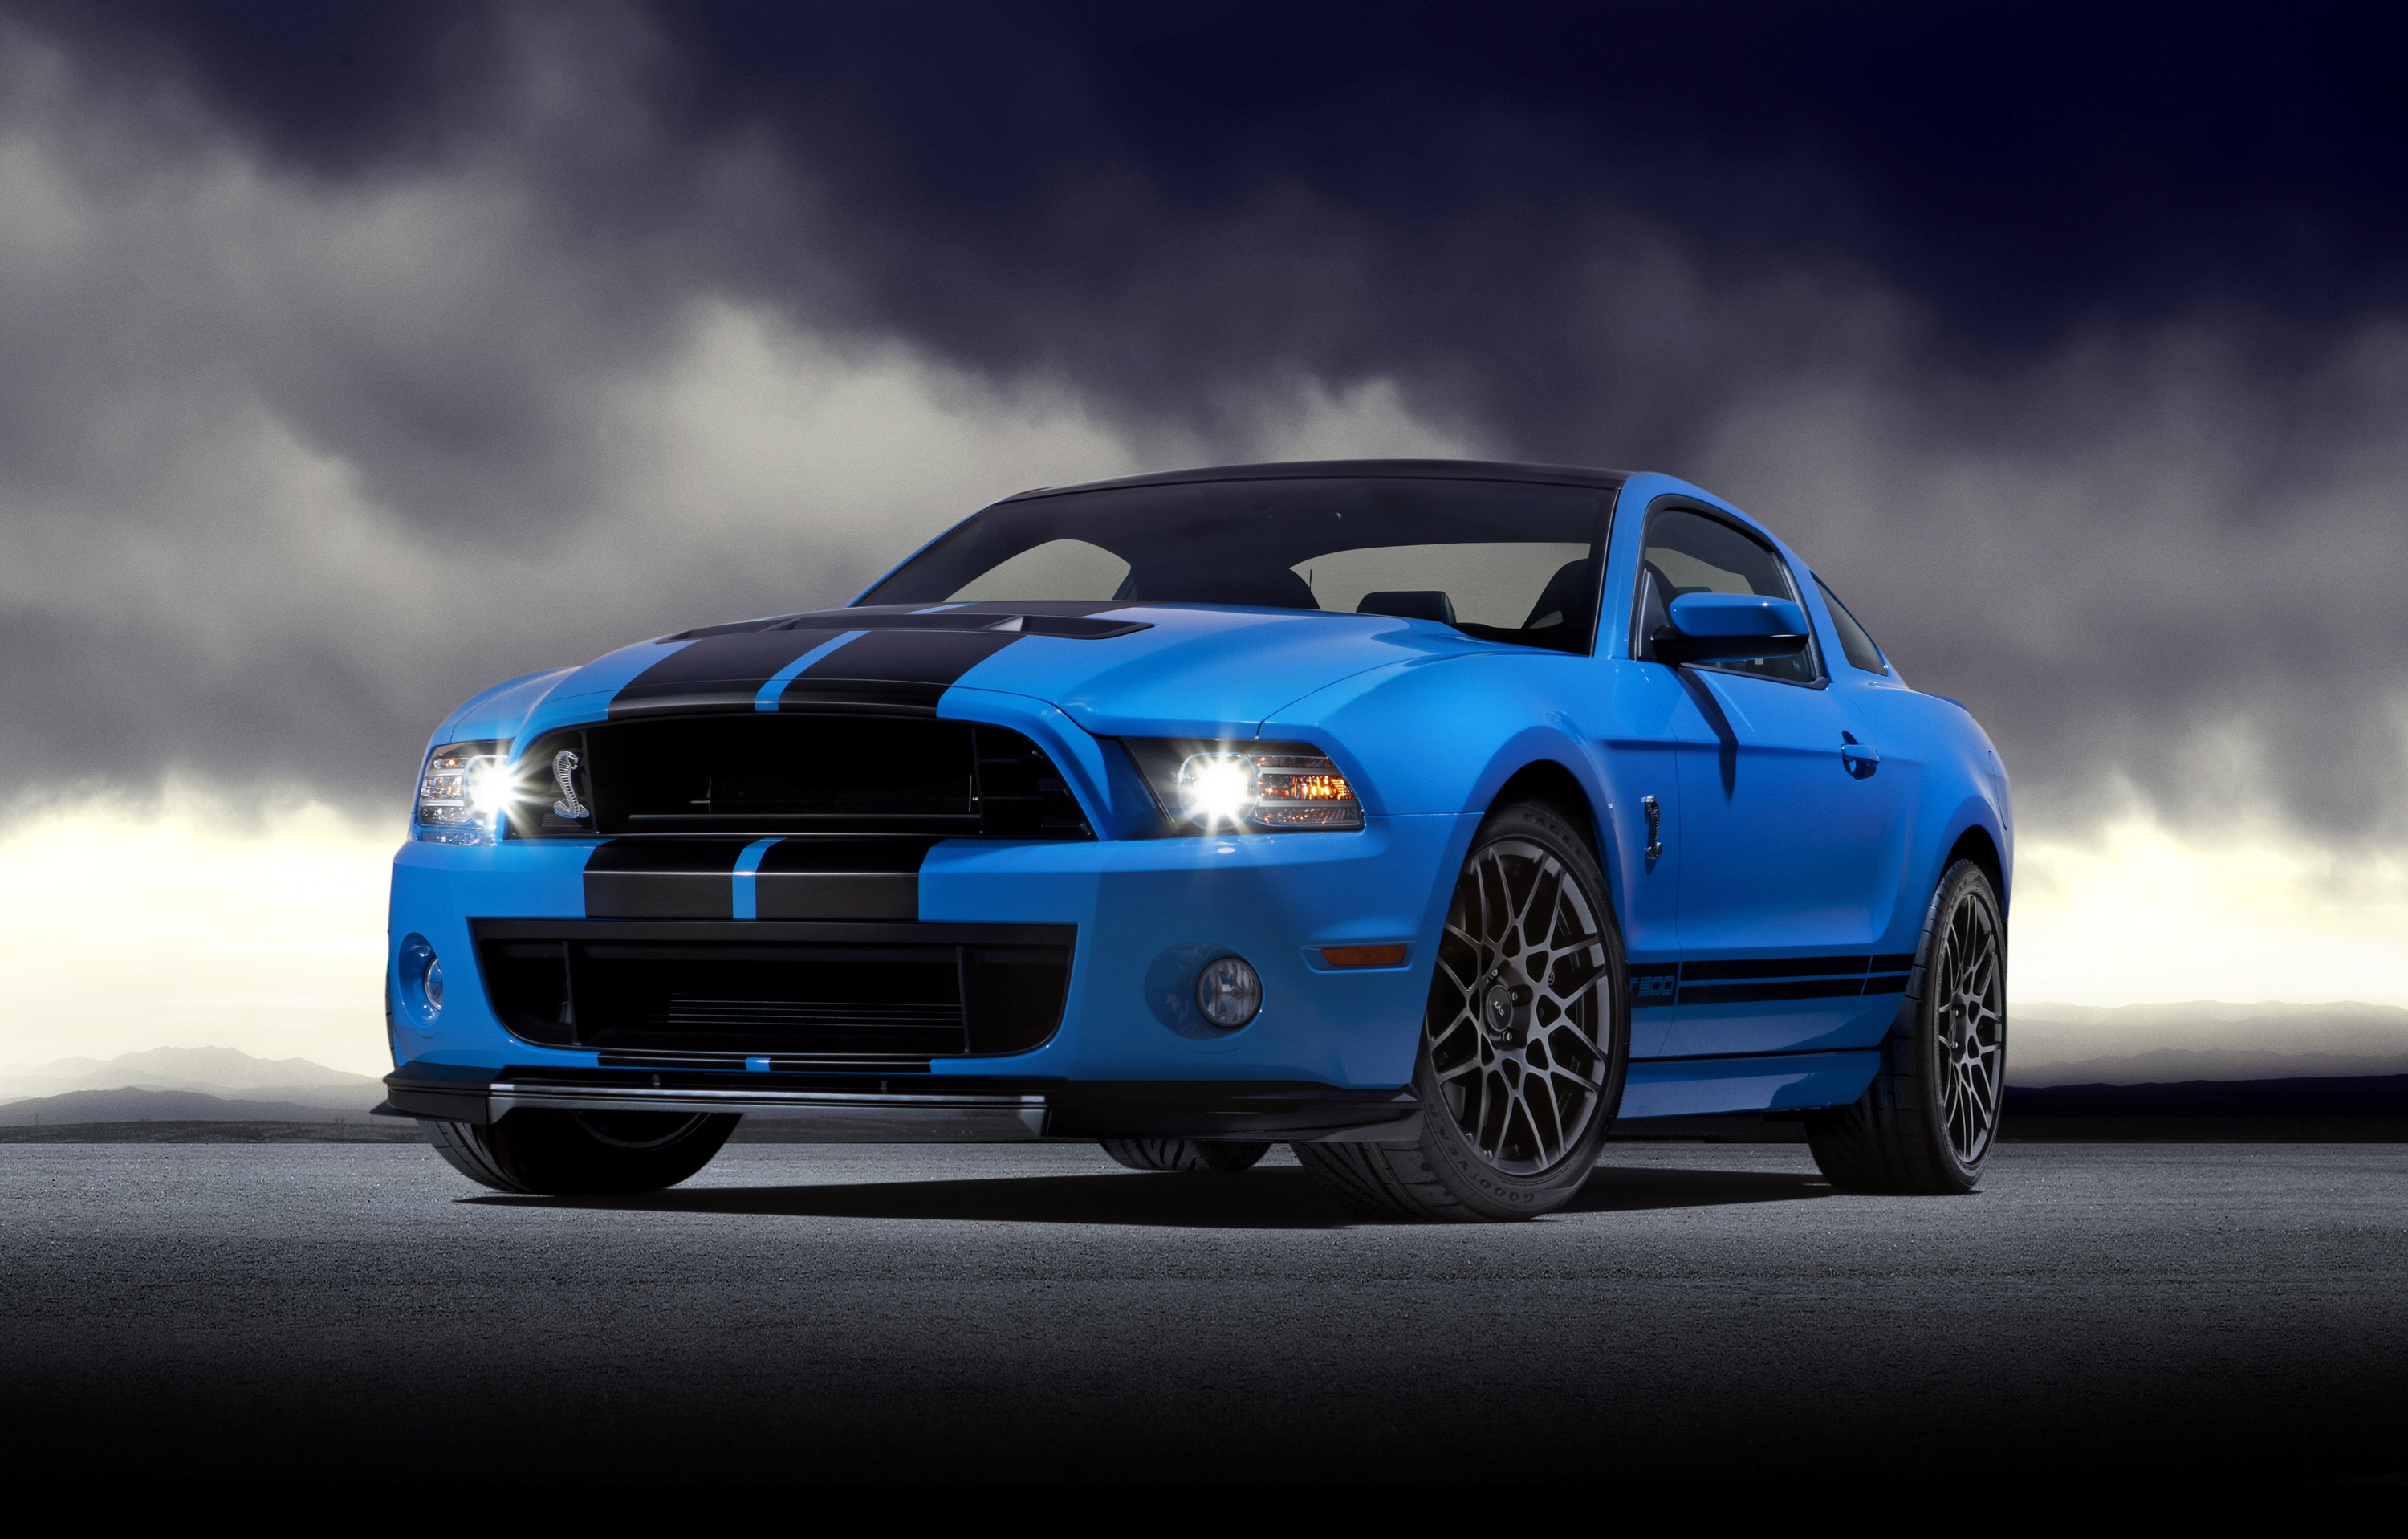 New Shelby Supercharger Kit Adds 300 HP To Your 2007-2012